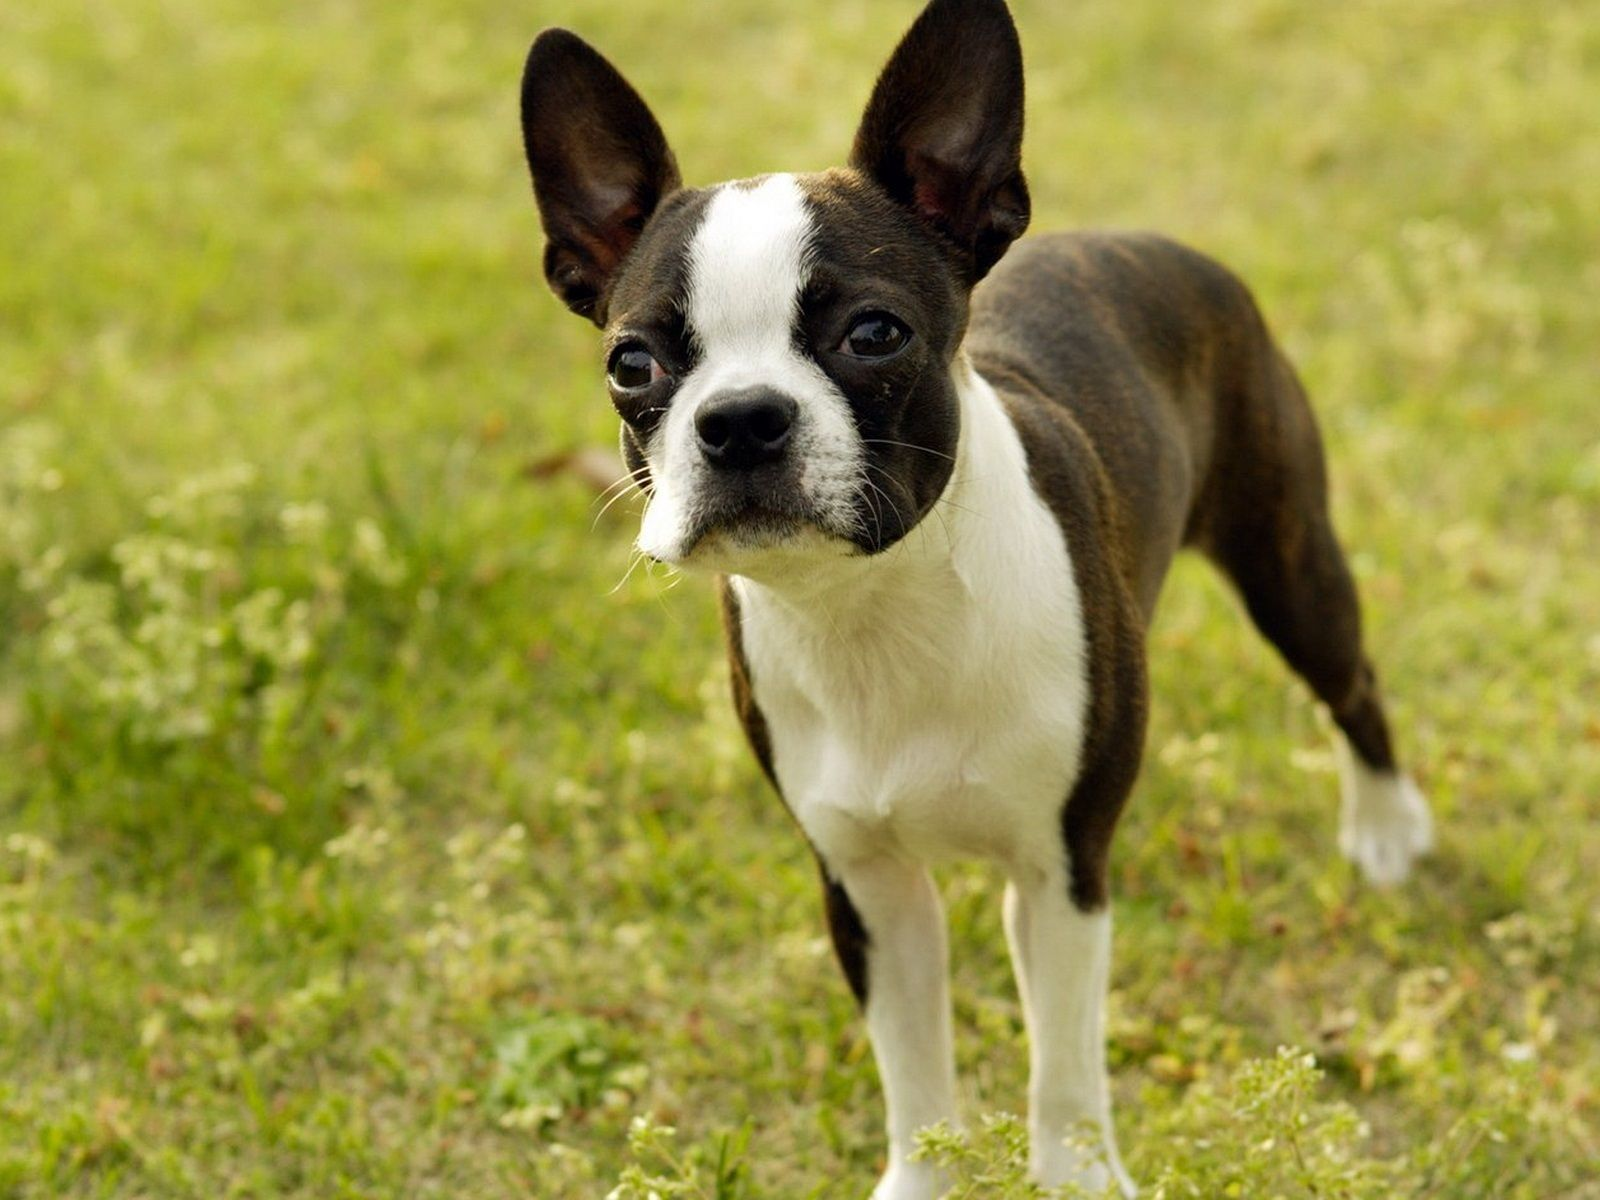 Boston Terrier Desktop Background - wallpaper.wiki